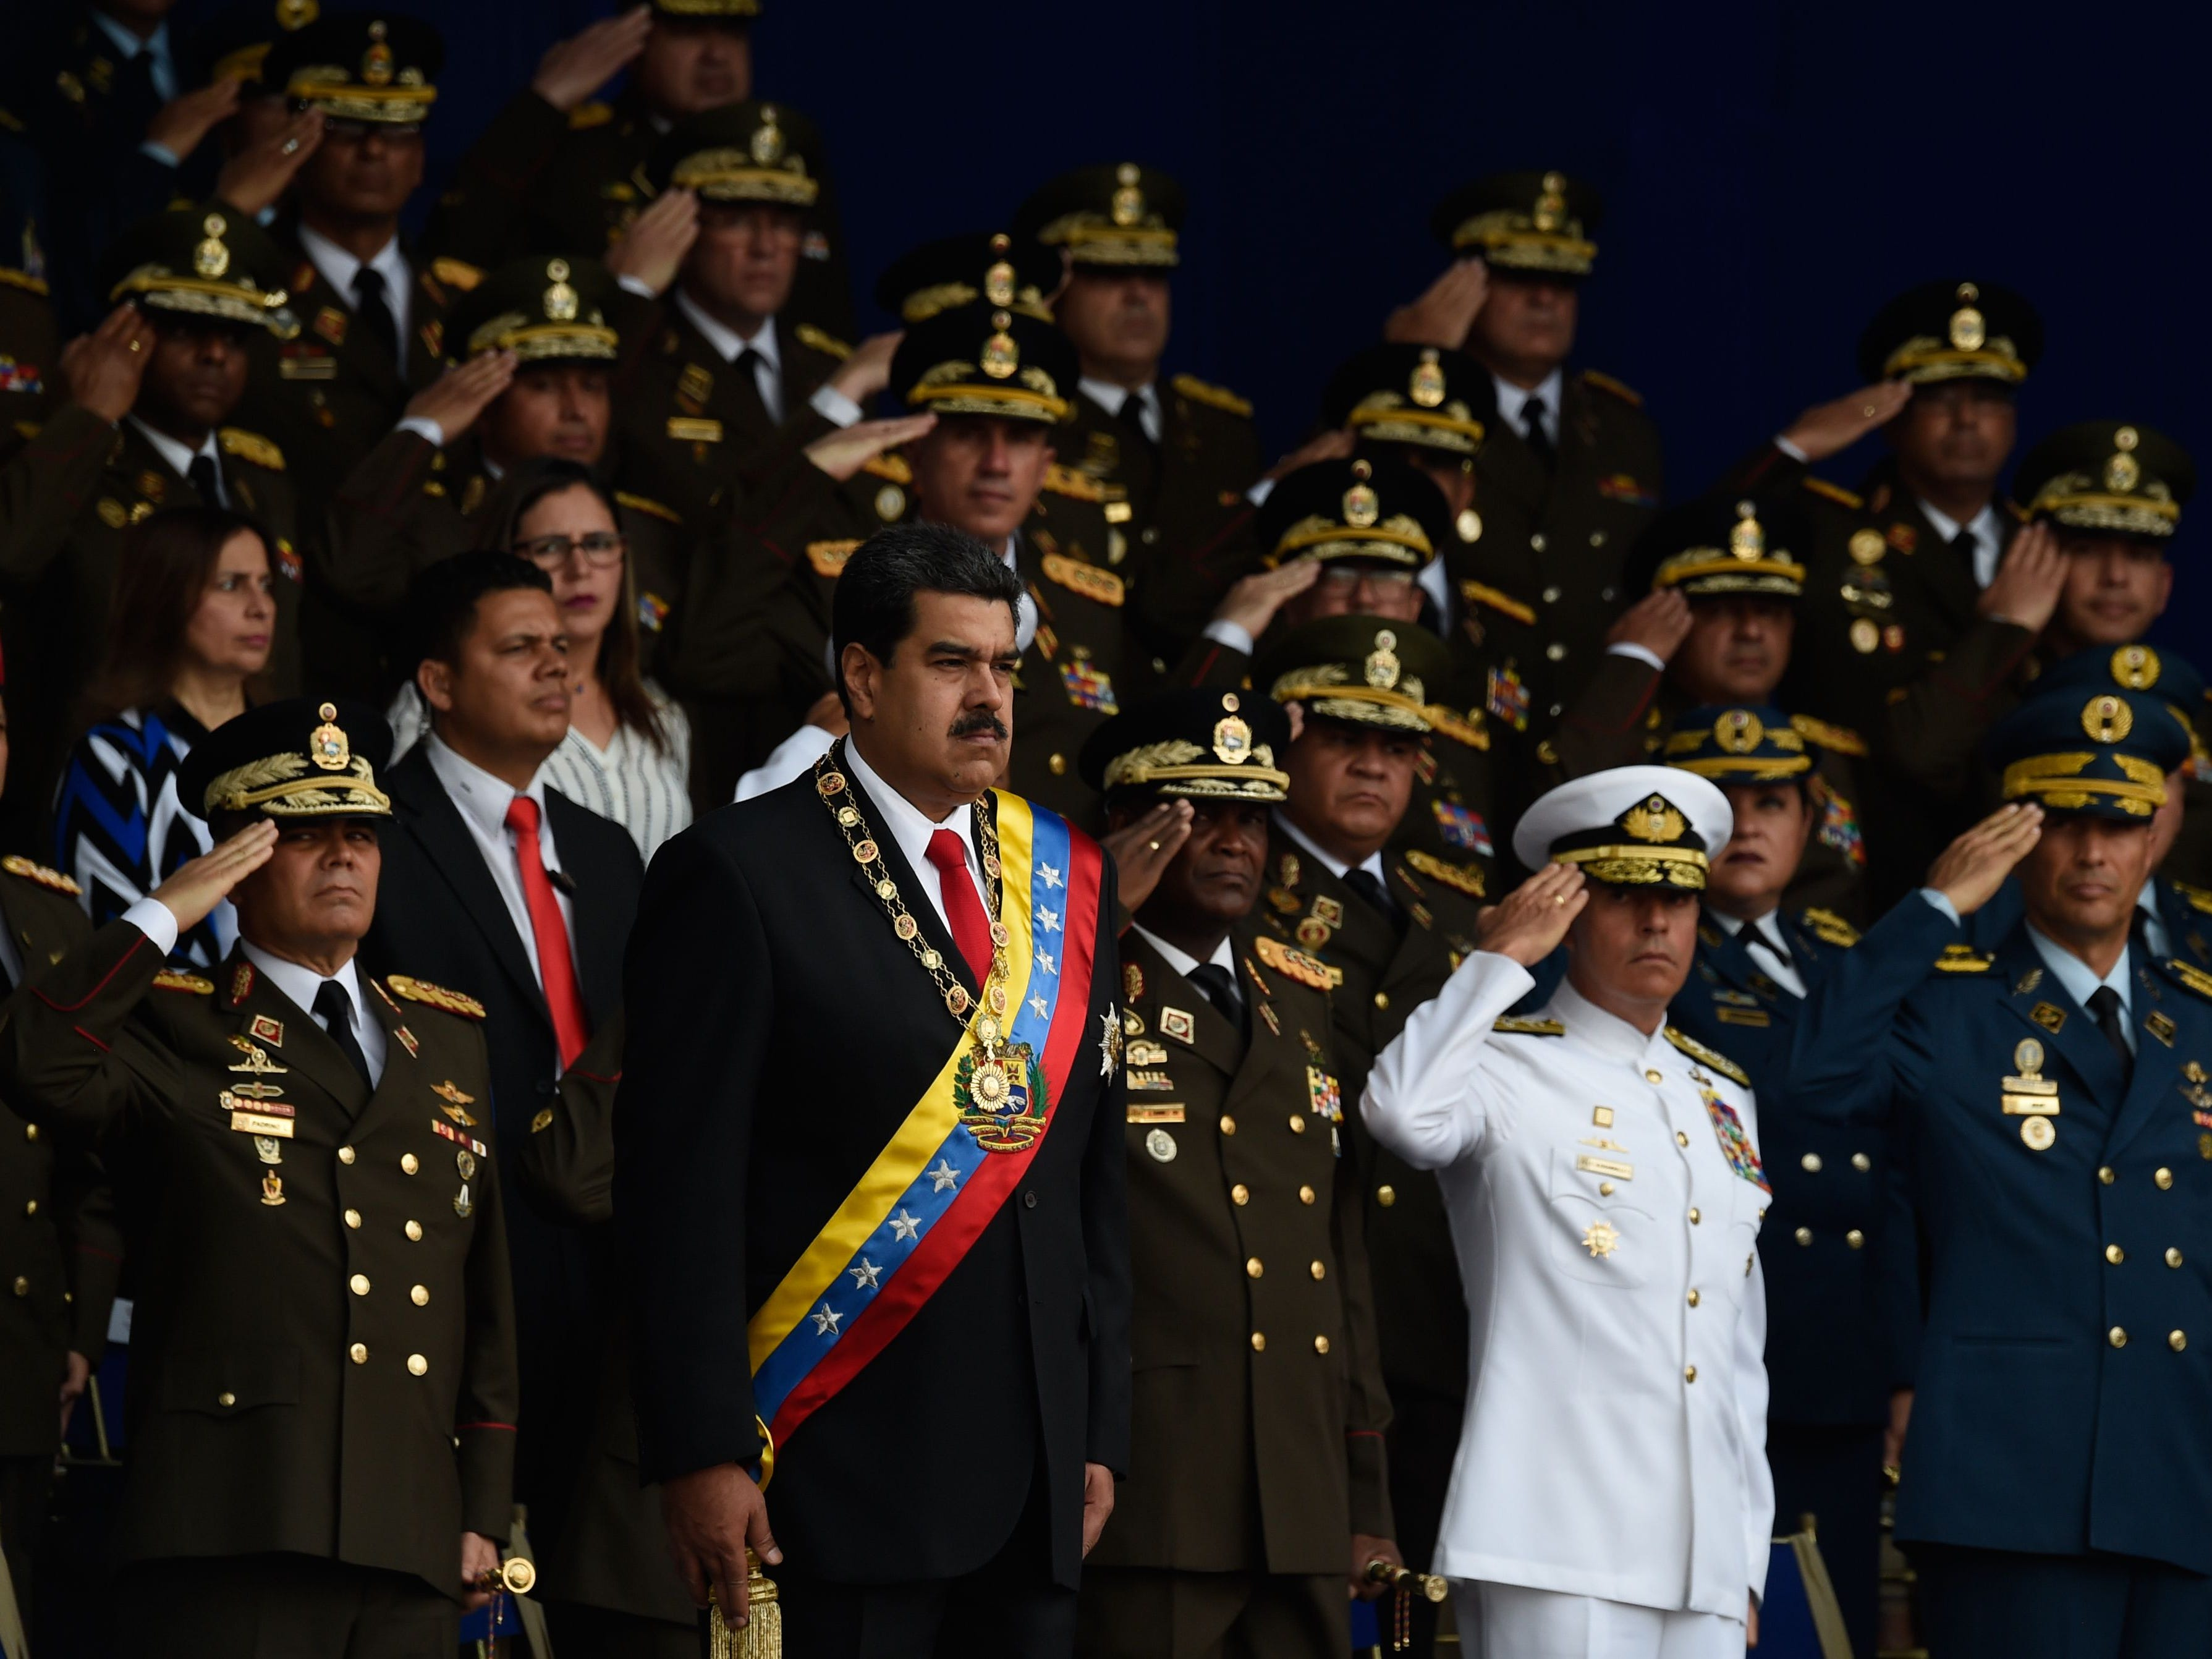 Venezuelan President Nicolas Maduro, center, attends a ceremony to celebrate the 81st anniversary of the National Guard in Caracas on Aug. 4, 2018. A loud bang interrupted Maduro's speech during the military ceremony.